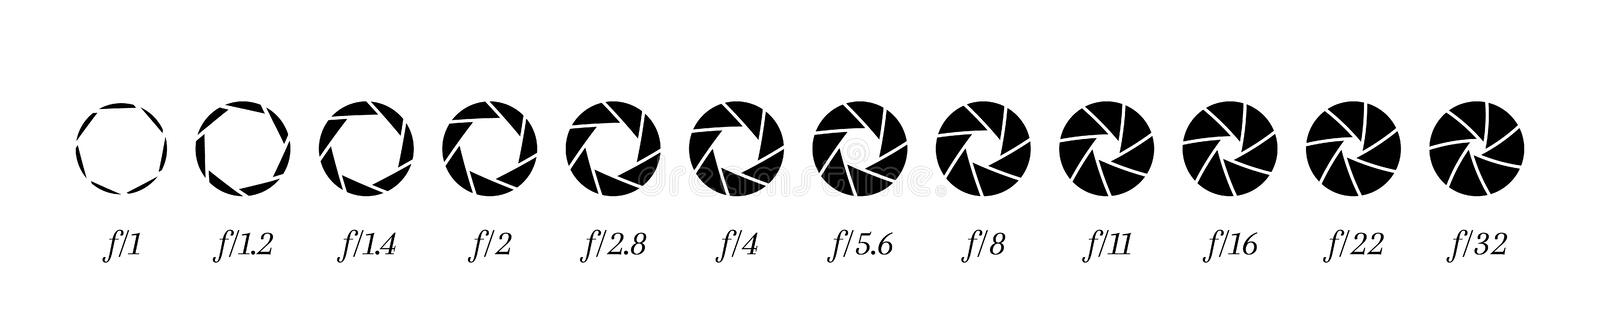 Camera lens diaphragm row with aperture value numbers.  vector illustration